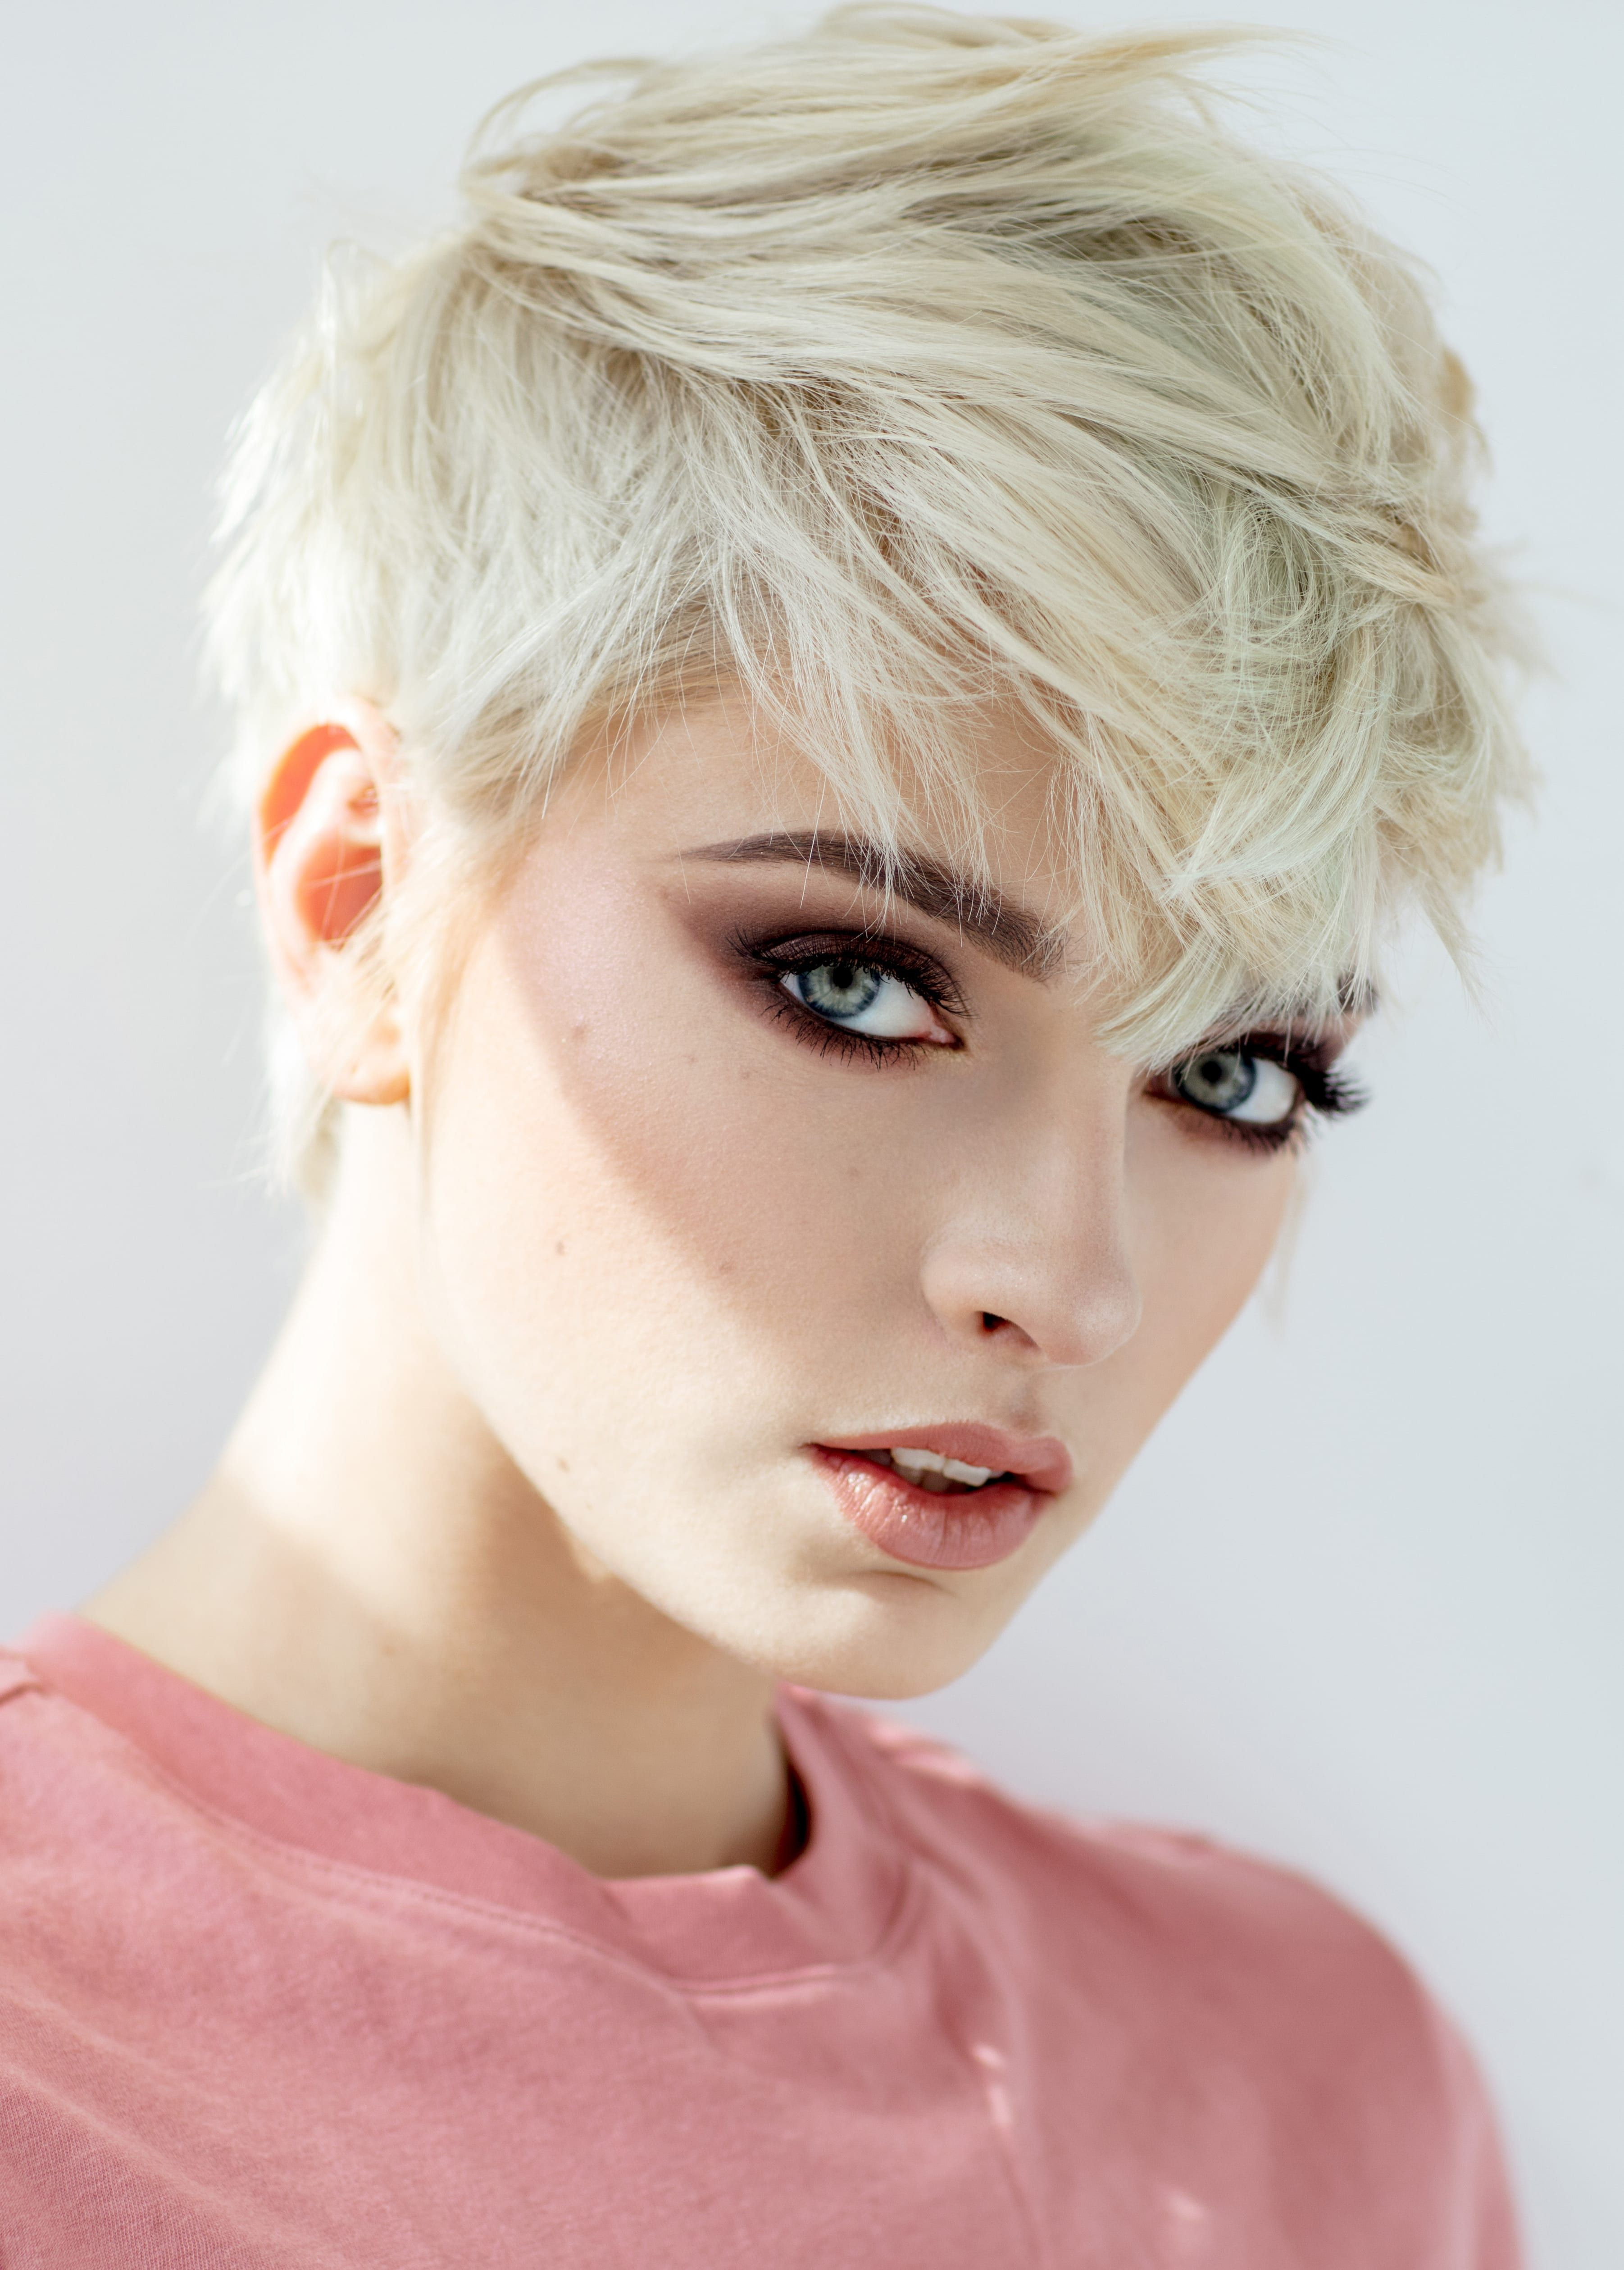 30 Latest Short Hairstyles For Women For 2020 Thick Hair Styles Short Blonde Pixie Pixie Hairstyles